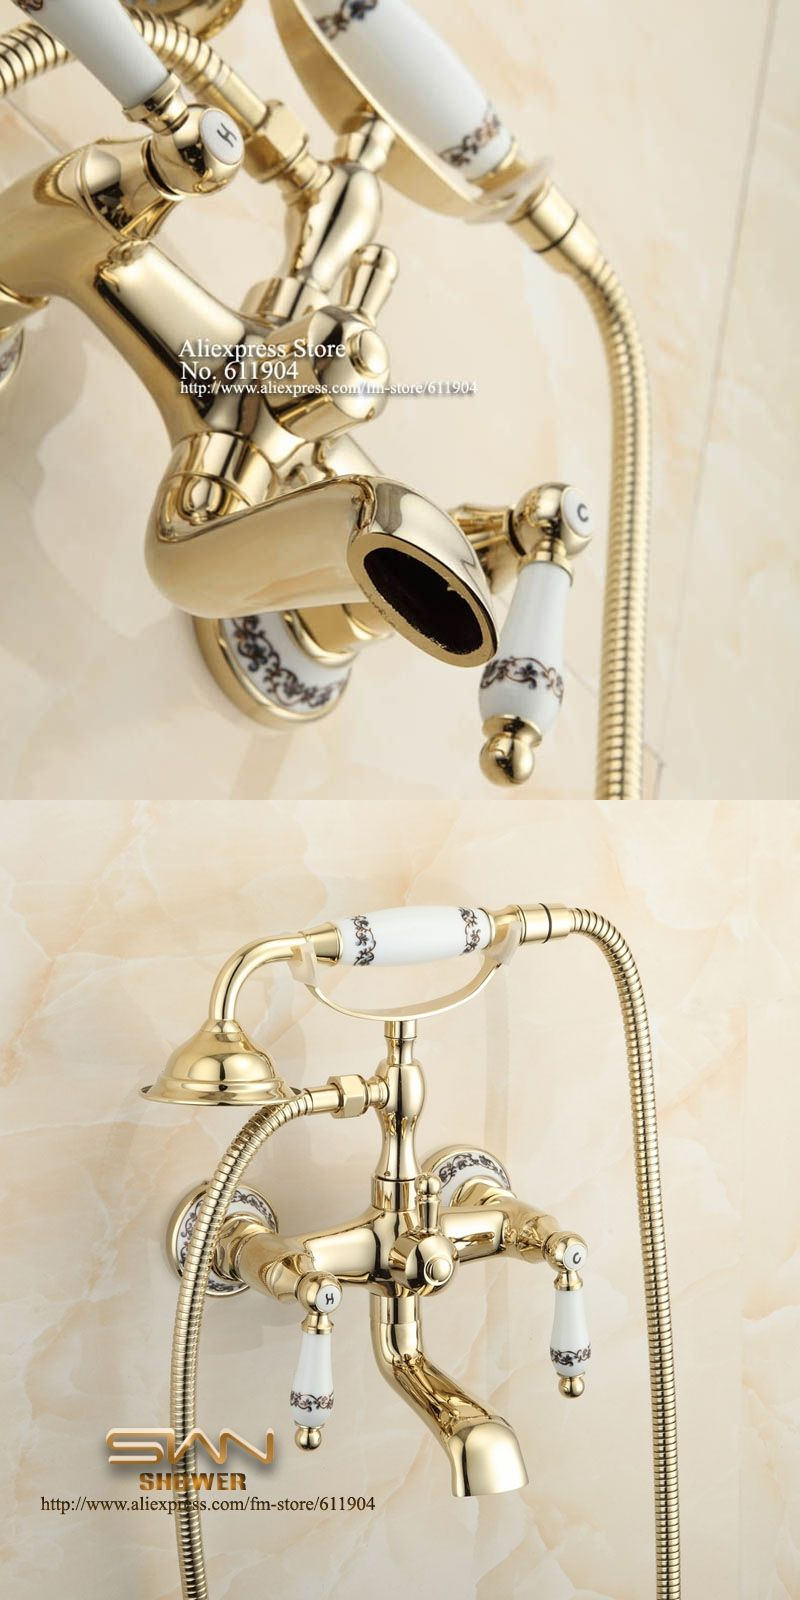 Chinese Ceramic Style Bathroom Clawfoot Bathtub Faucet Dual Lever ...